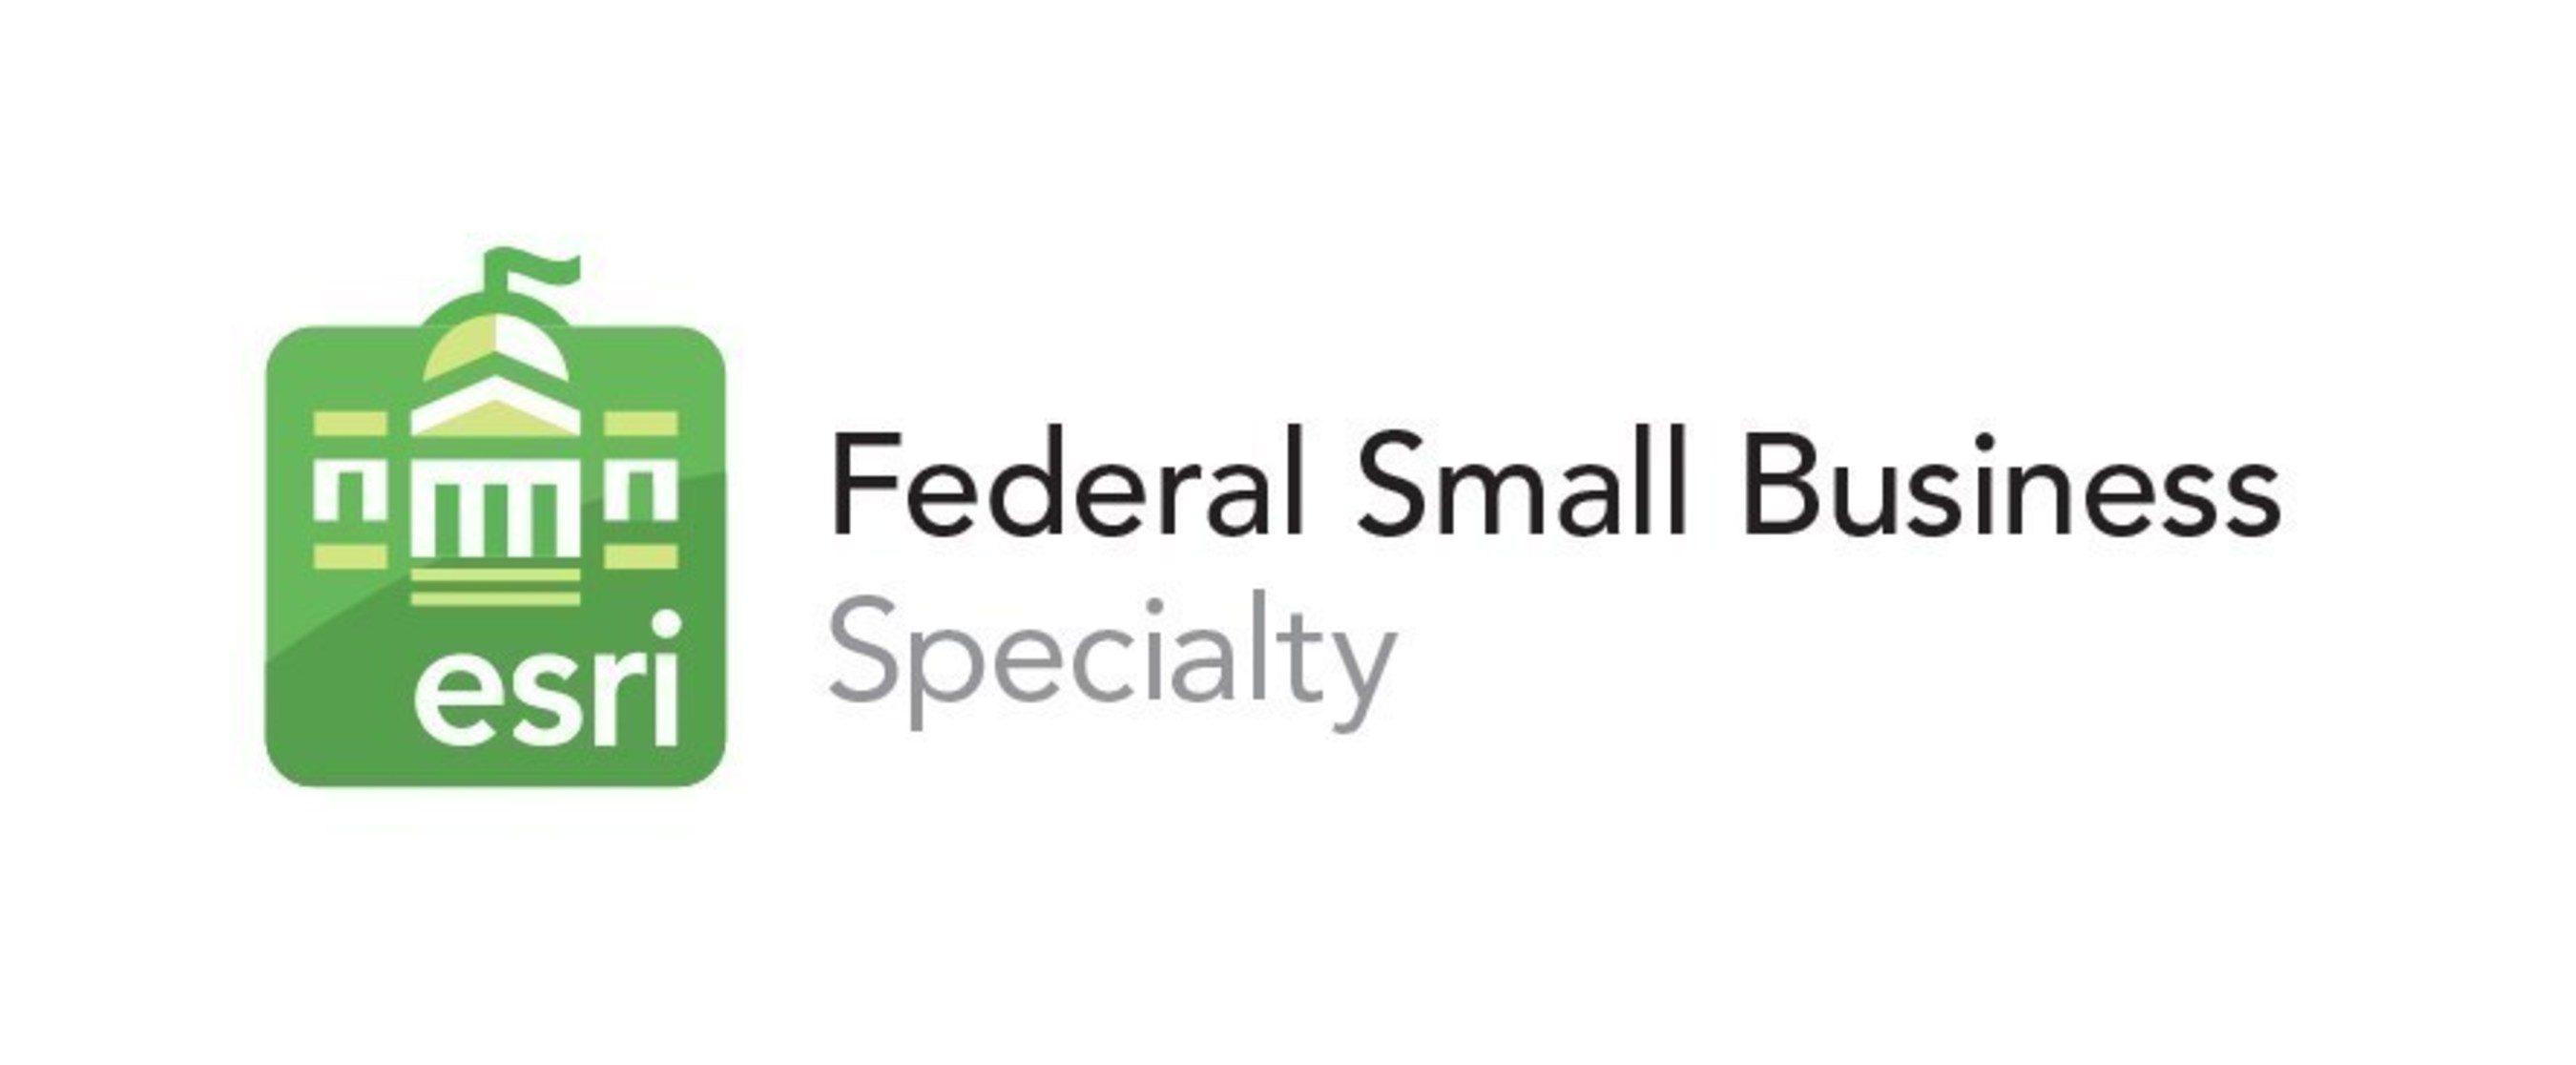 Federal Small Business Specialty